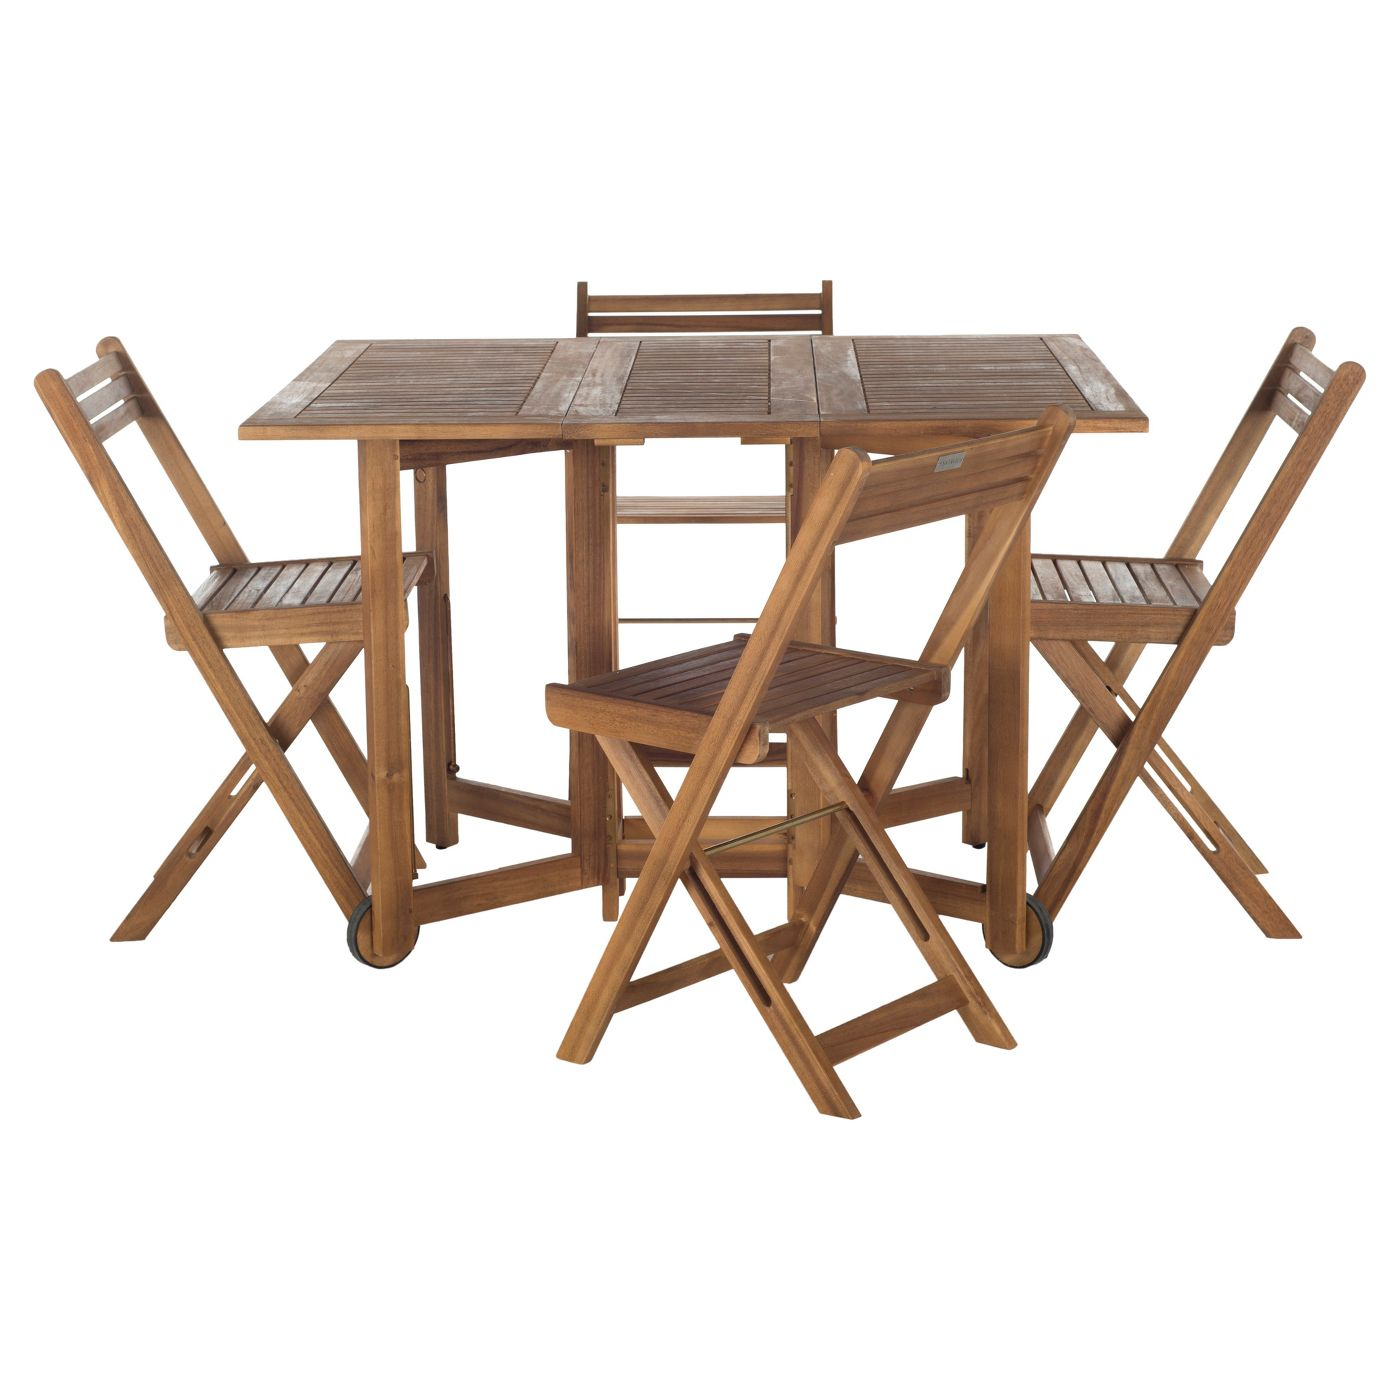 5-Piece Safavieh Arvin Outdoor Living Collection Dining Set